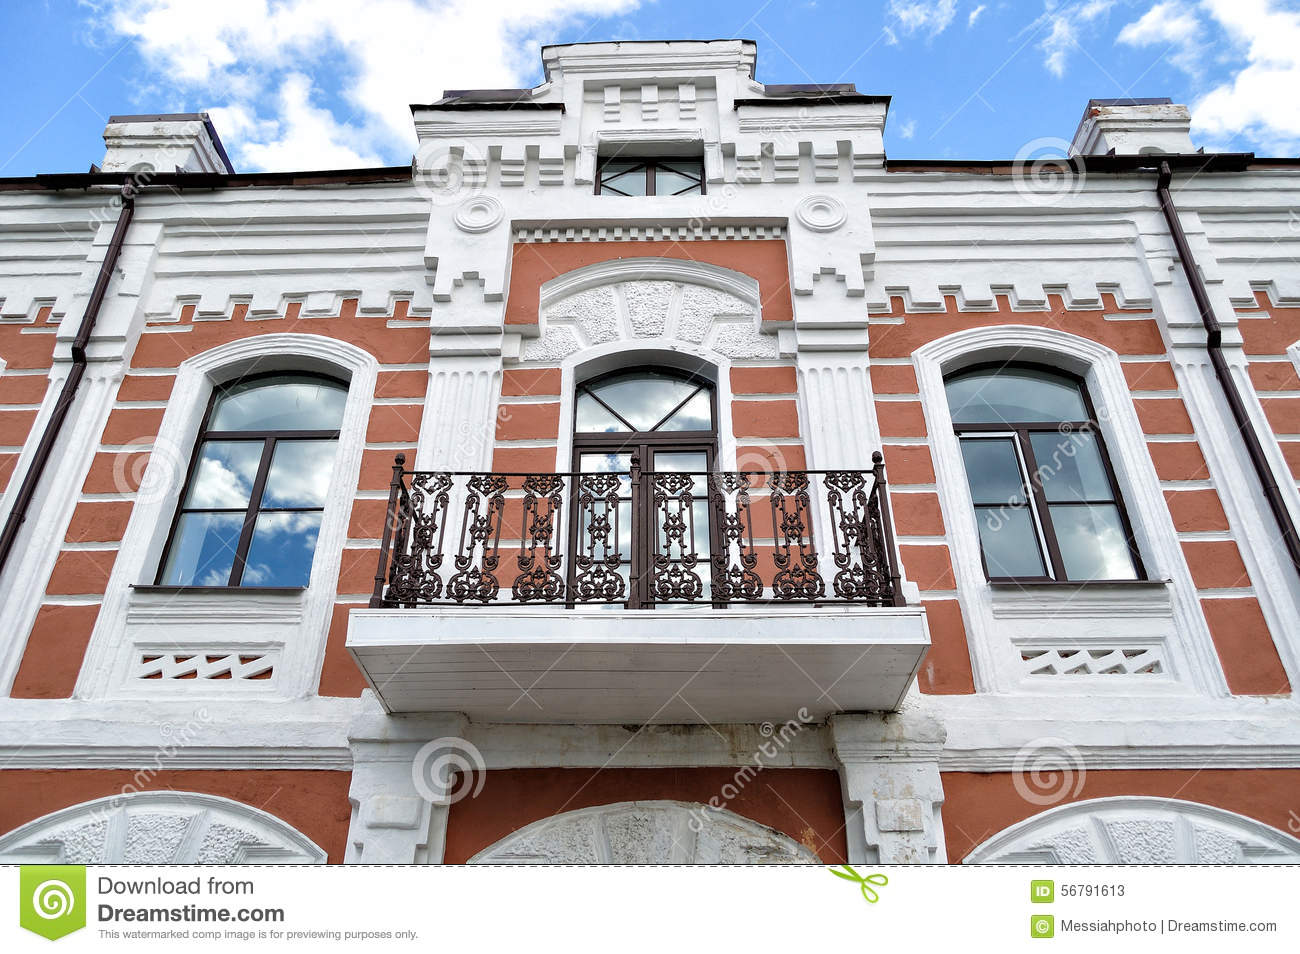 Architectural Building Elements : Architectural elements of beautiful old building with